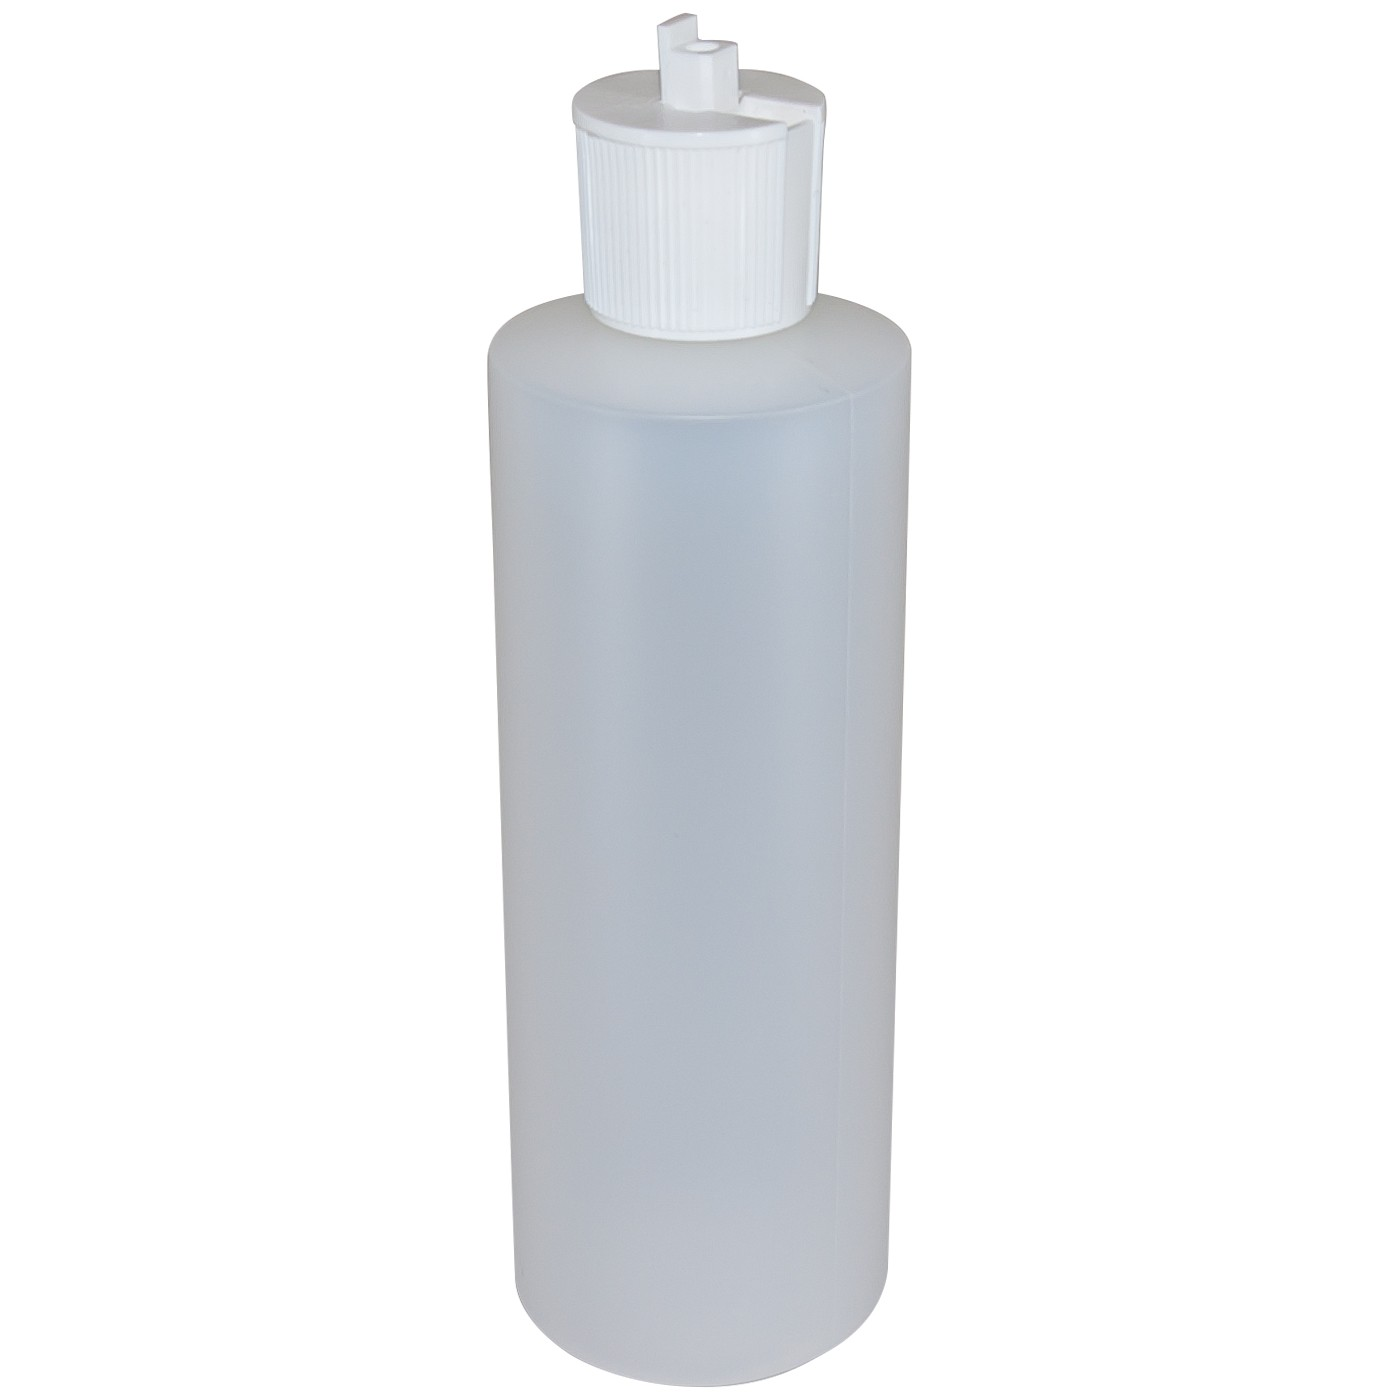 8oz Squeeze Bottle with Easy Flip Top